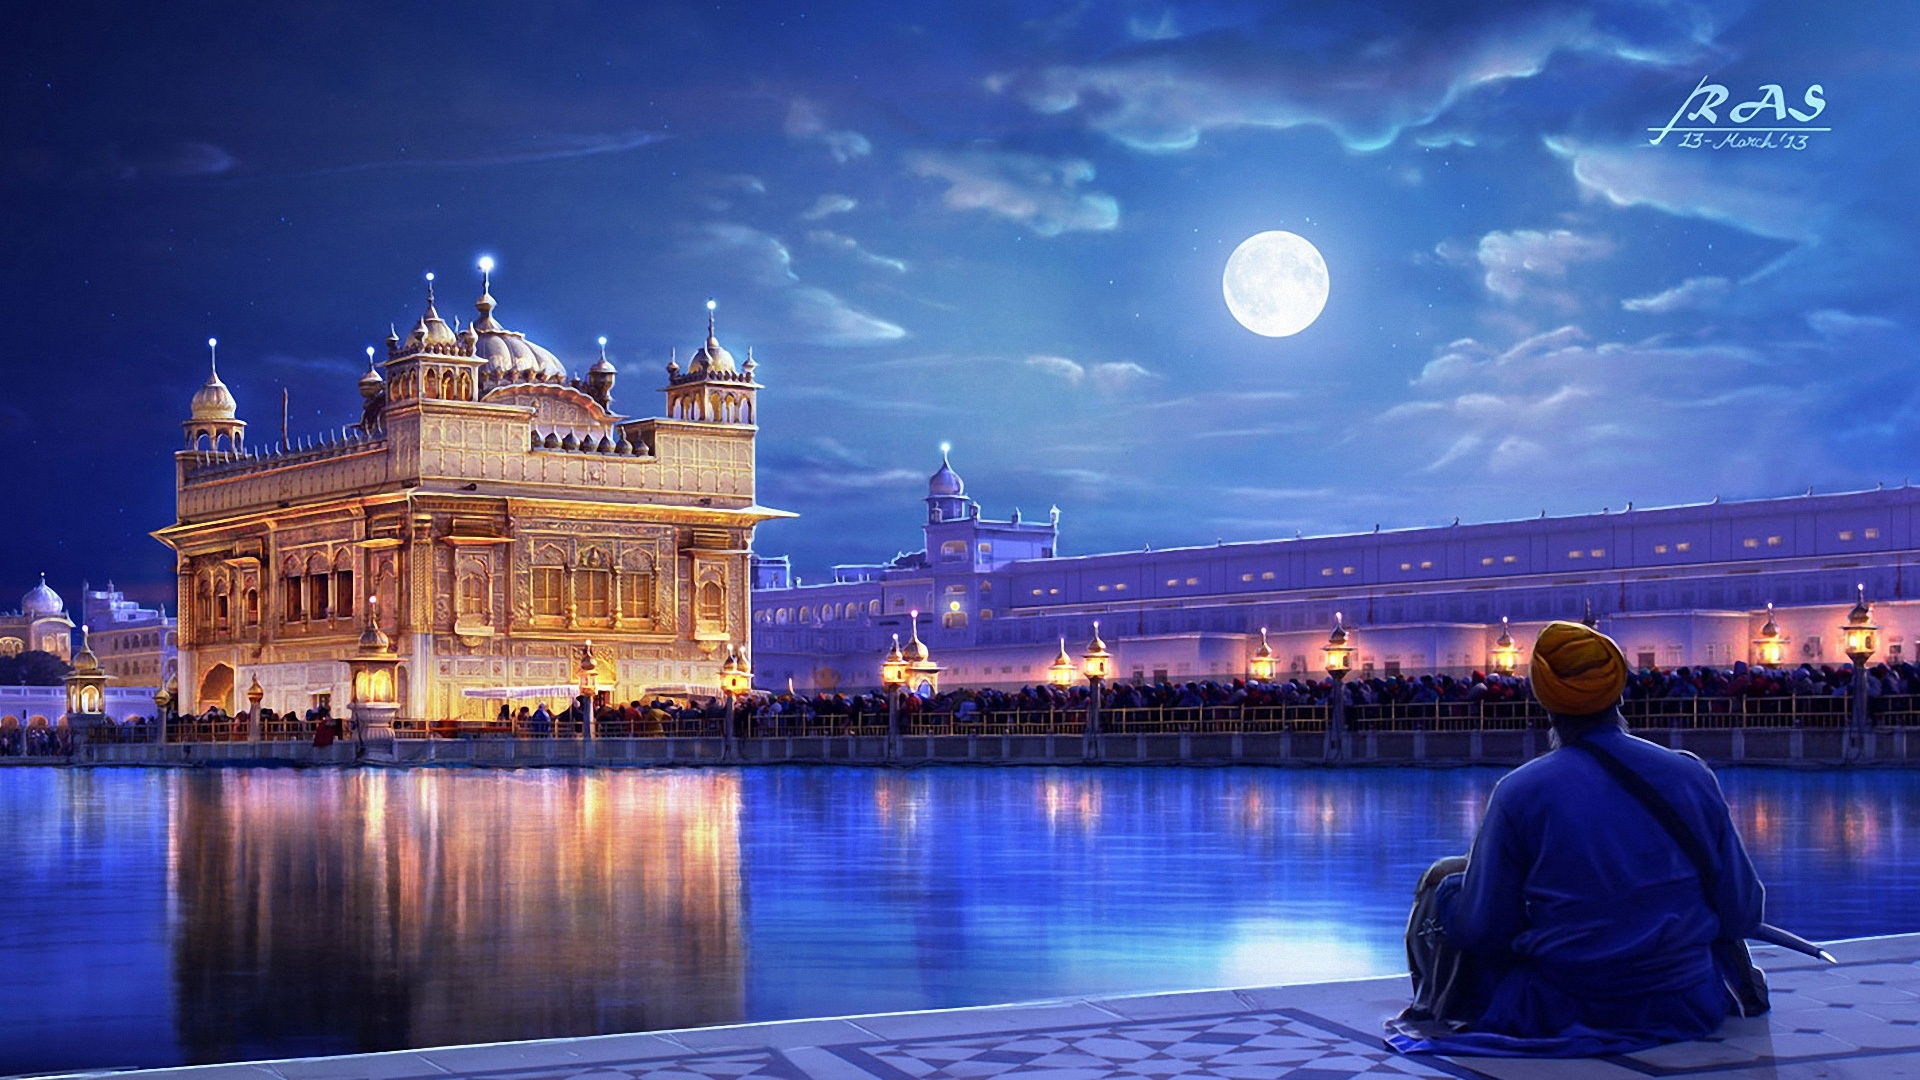 Golden Temple Amritsar Punjab India Wallpapers In Jpg Format For